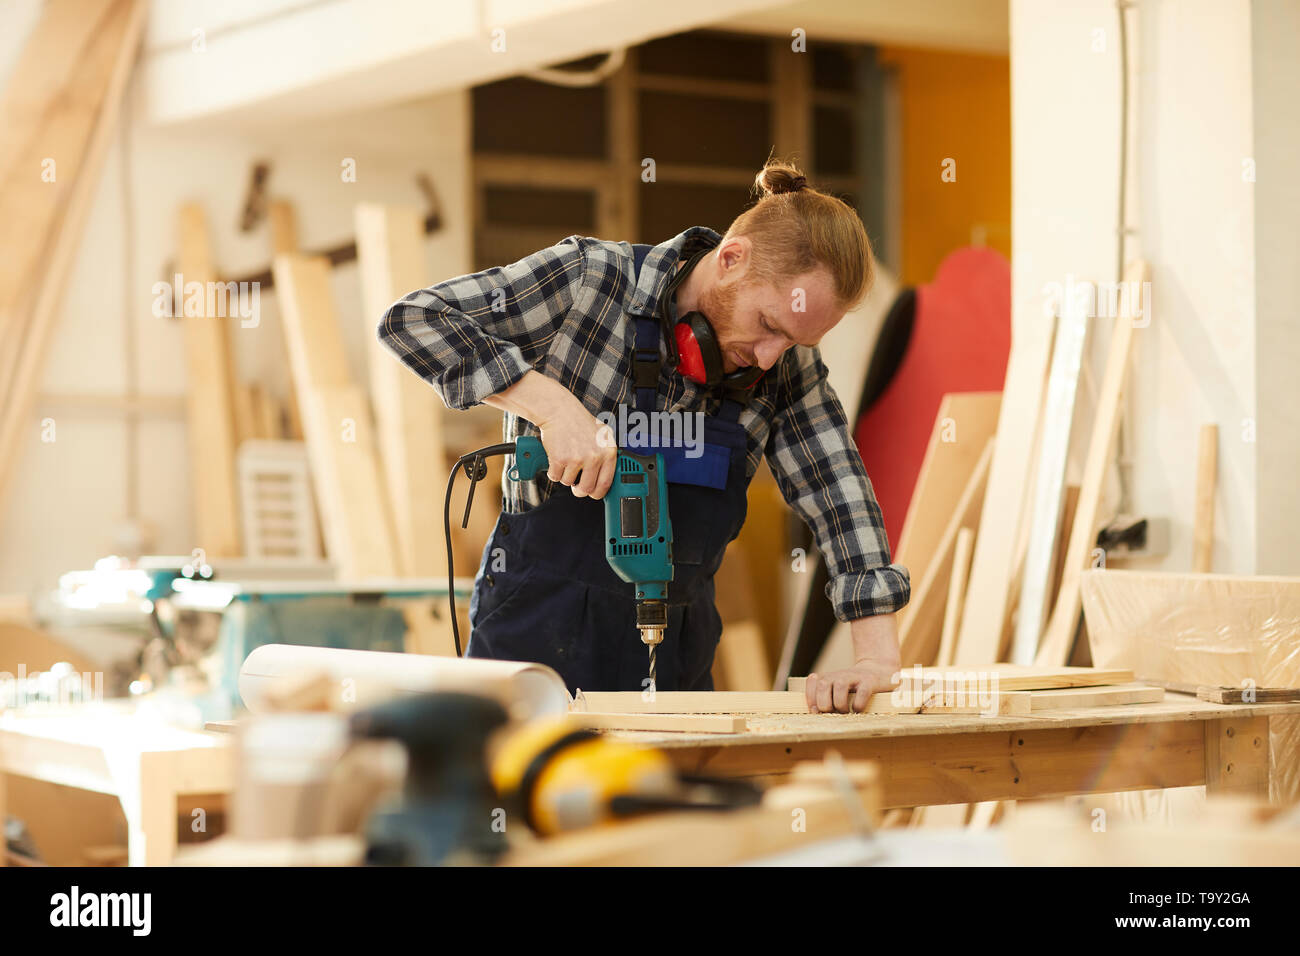 Waist up portrait of modern carpenter drilling wood while working in joinery lit by sunlight, copy space - Stock Image